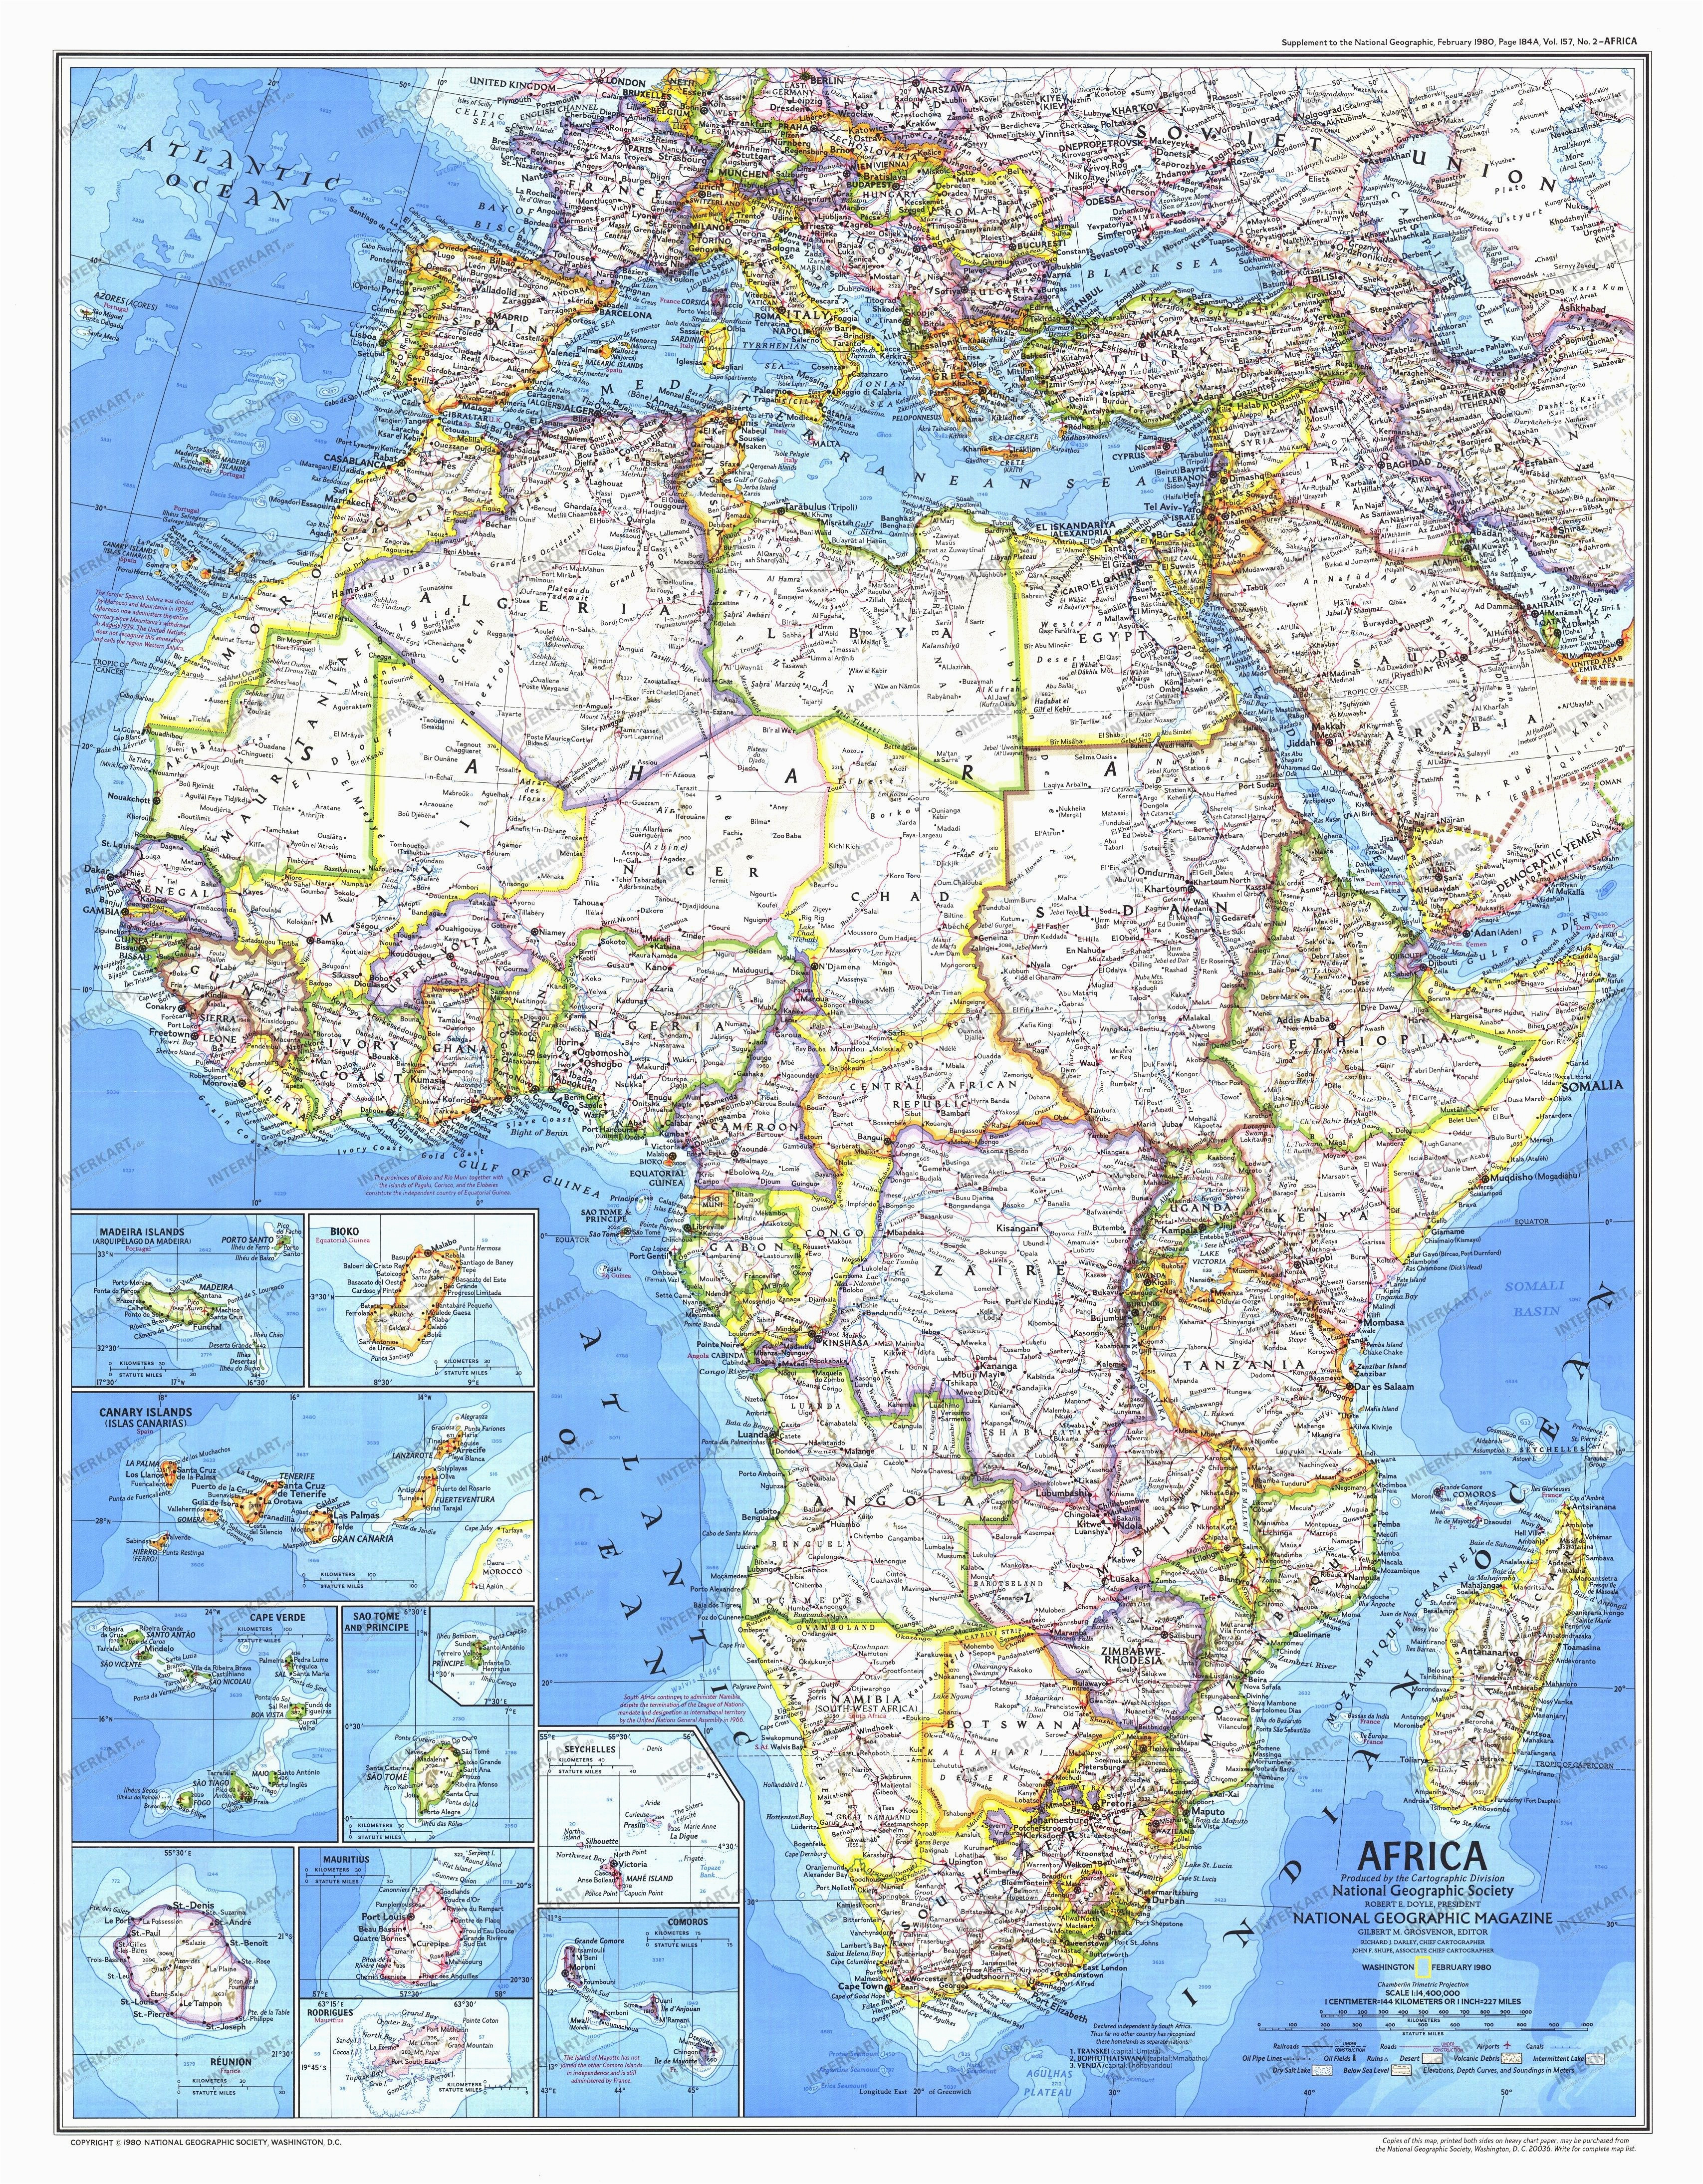 1980 africa map historical maps